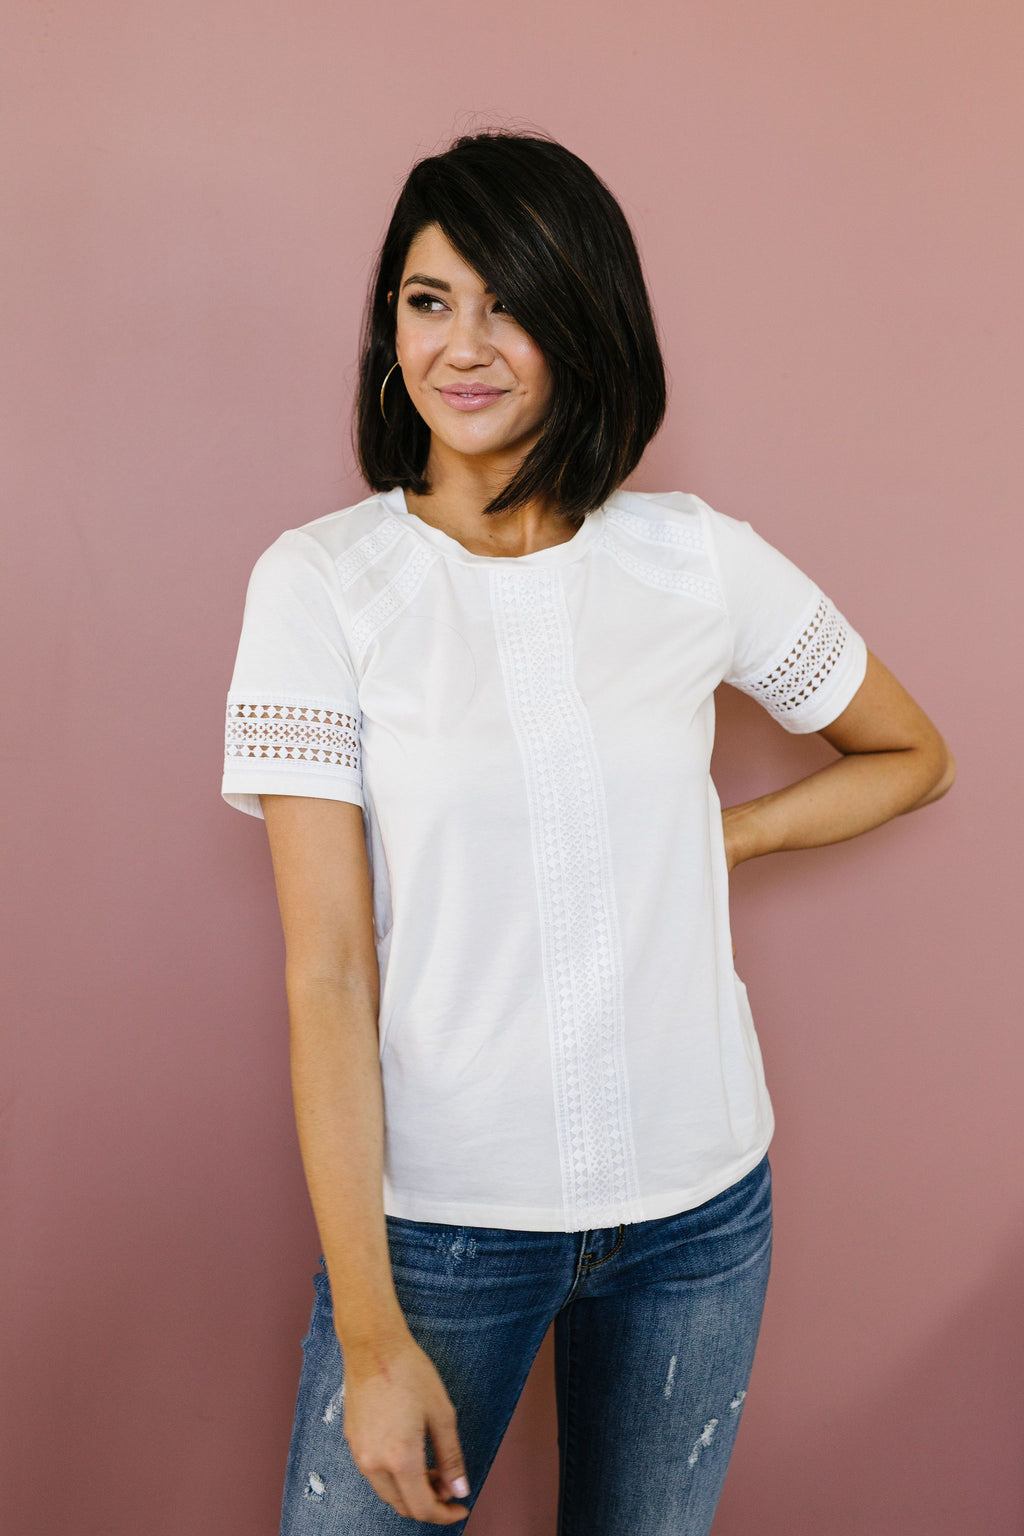 A Trace Of Lace Blouse In White SAS